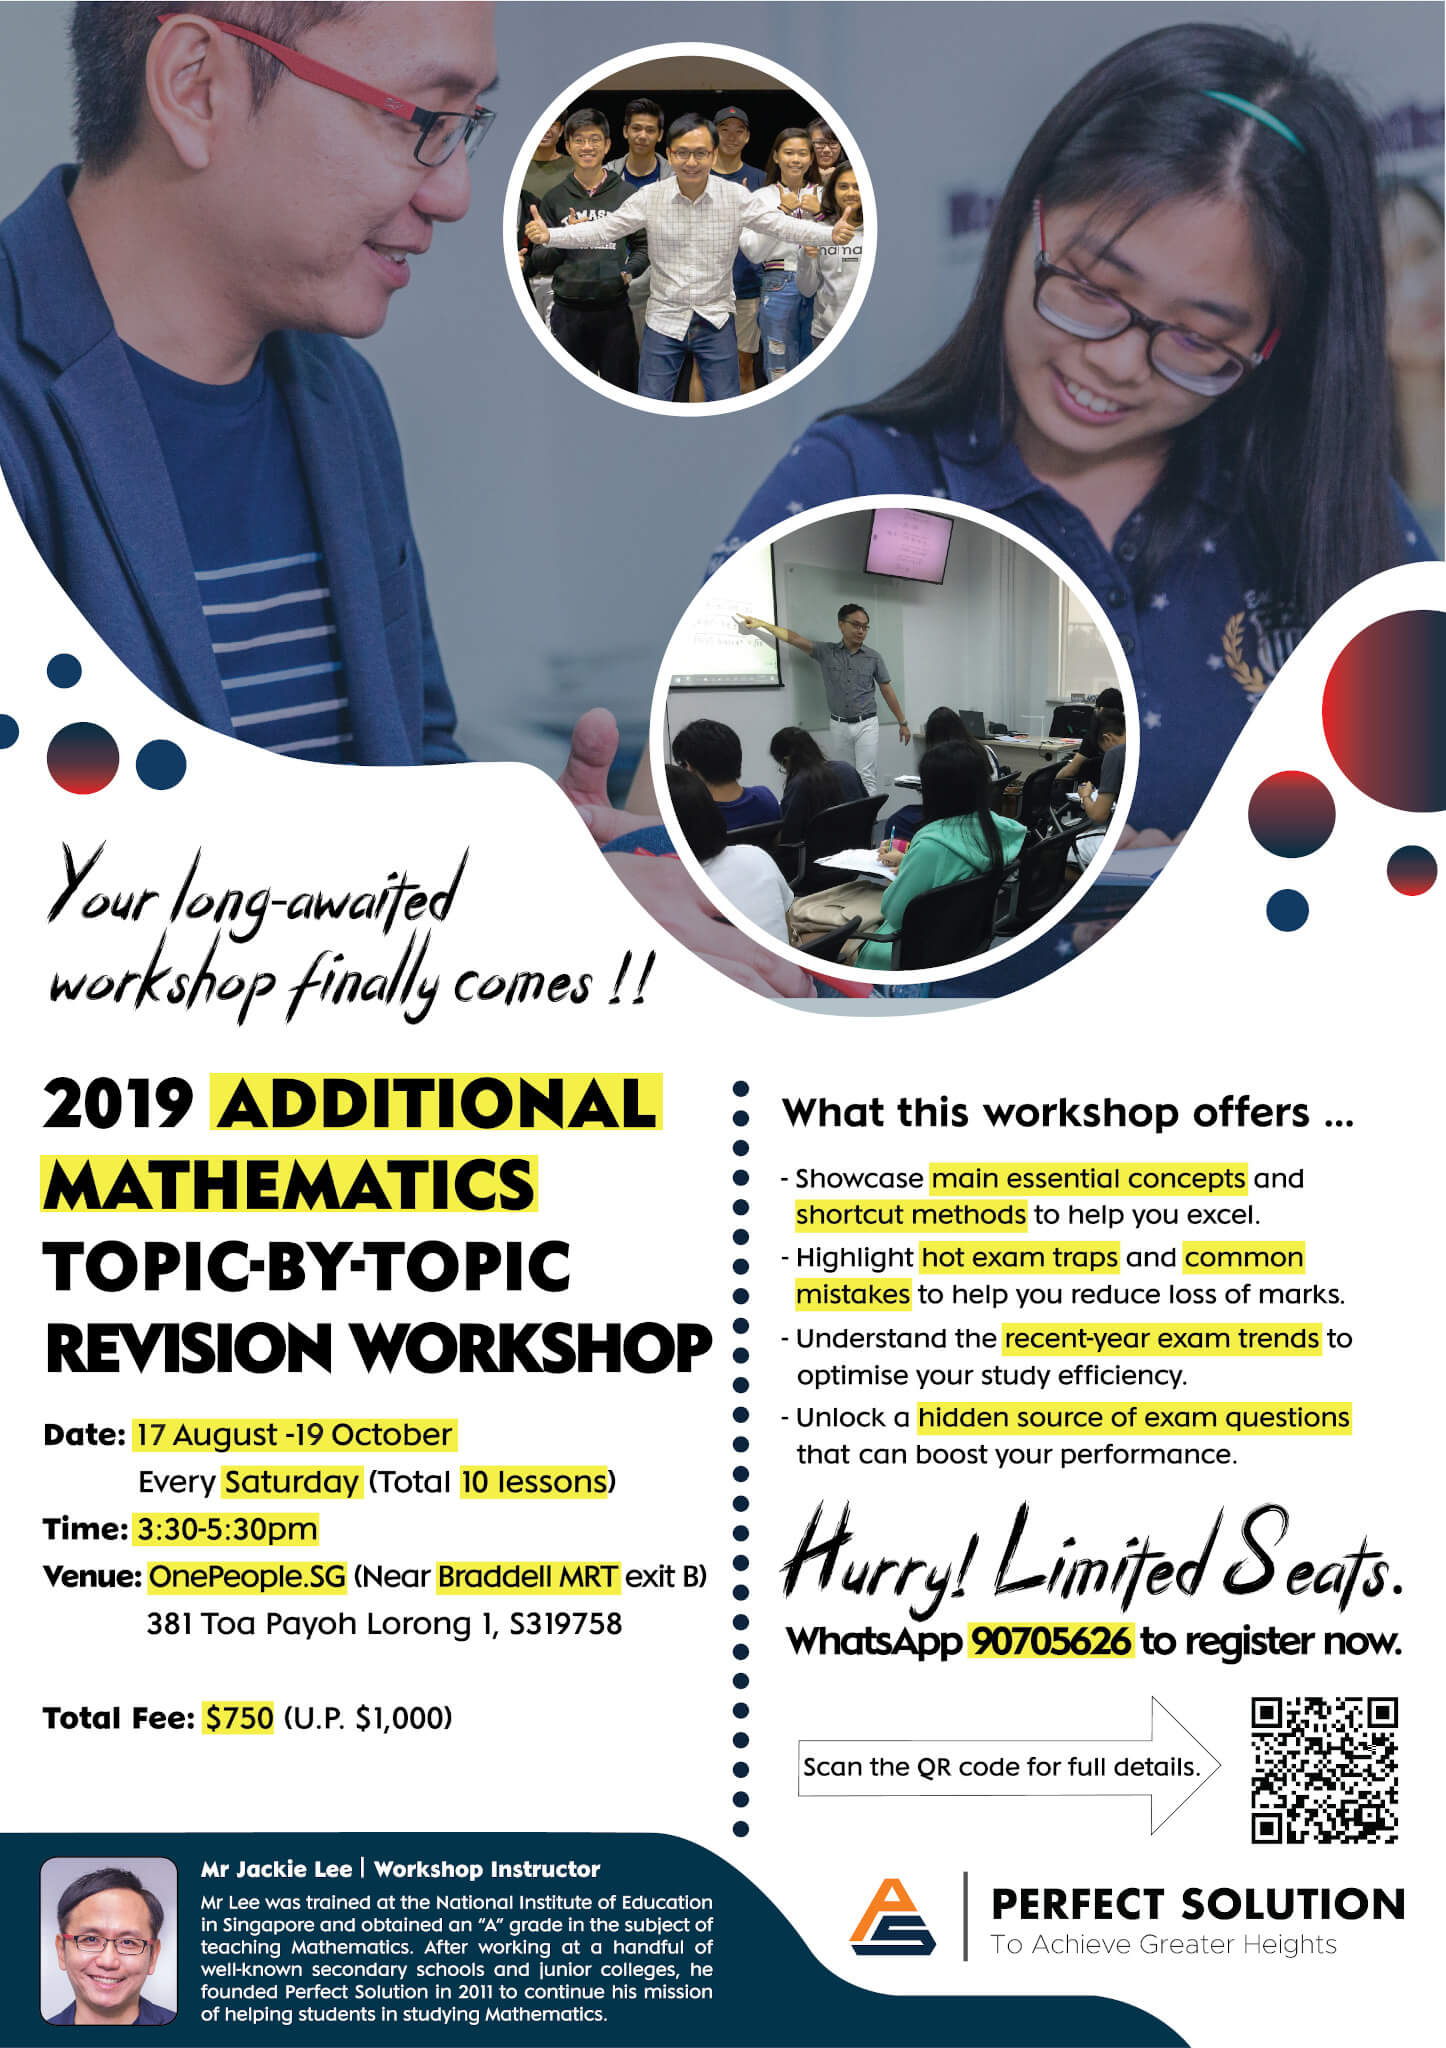 2019 Additional Mathematics Topic-By-Topic Revision Workshop